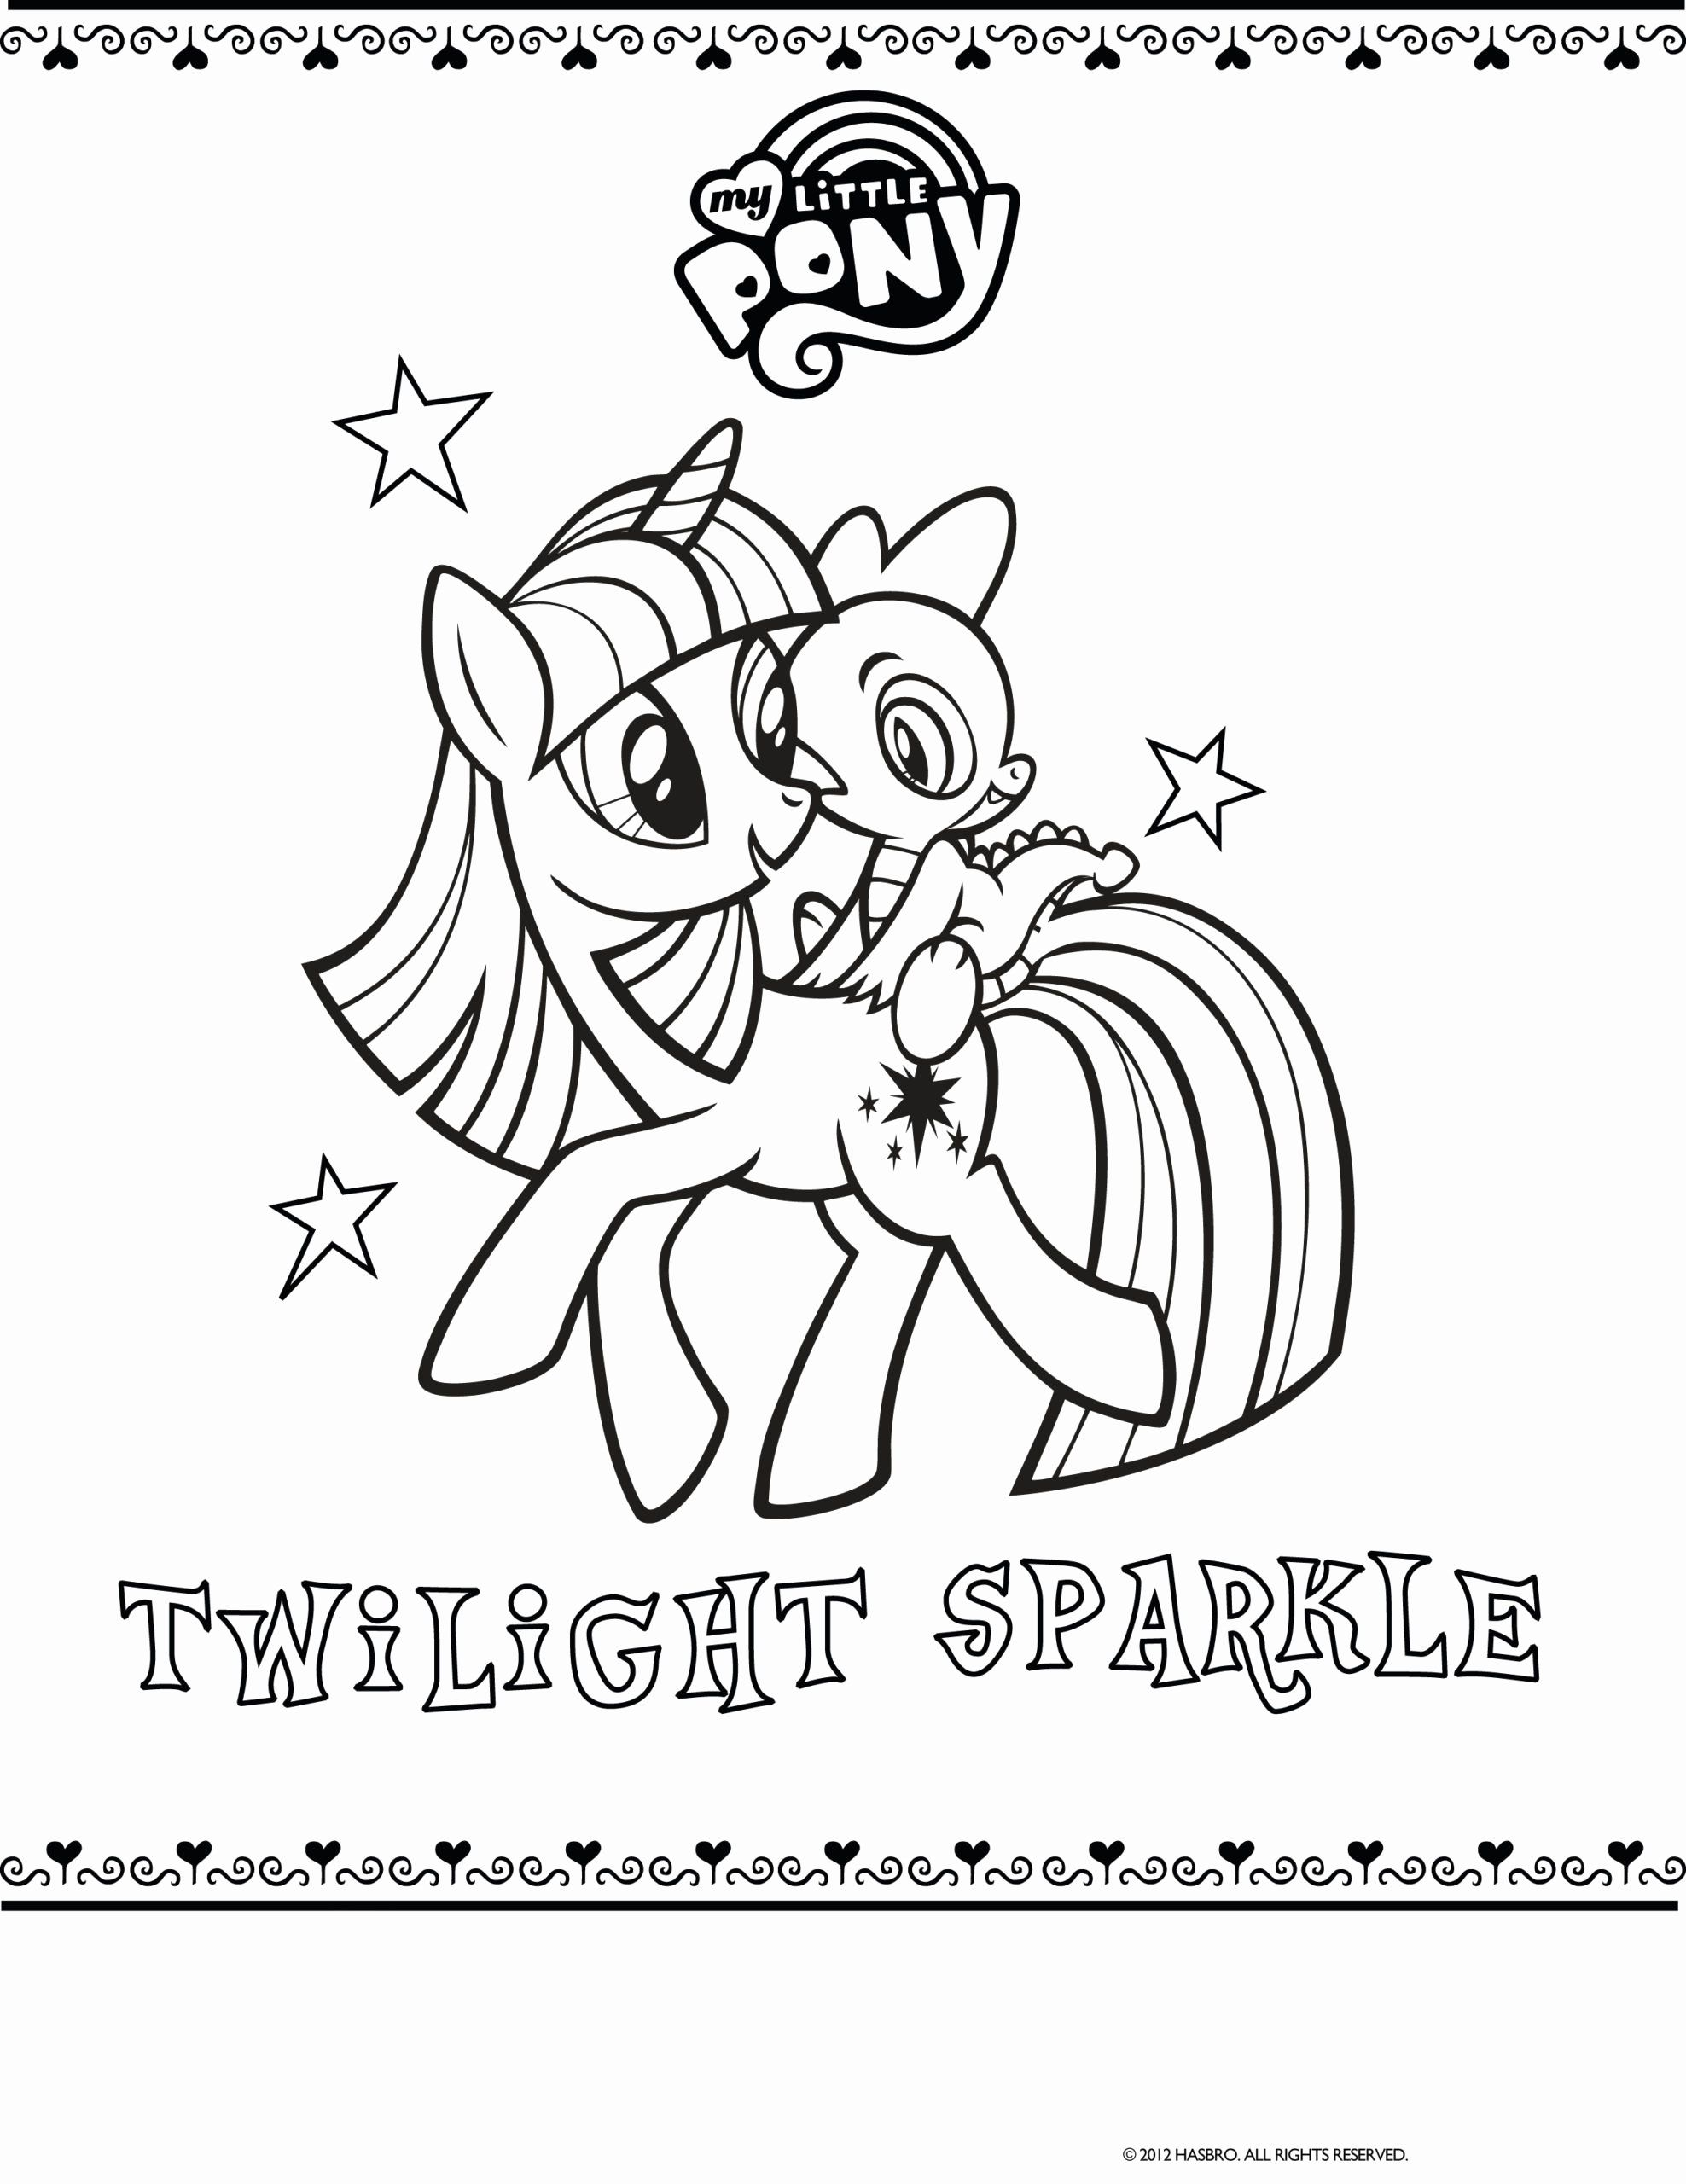 My Little Pony Printable Coloring Pages Awesome Coloring Pages My Little Pony Cartoons In 2020 My Little Pony Coloring My Little Pony Printable My Little Pony Twilight